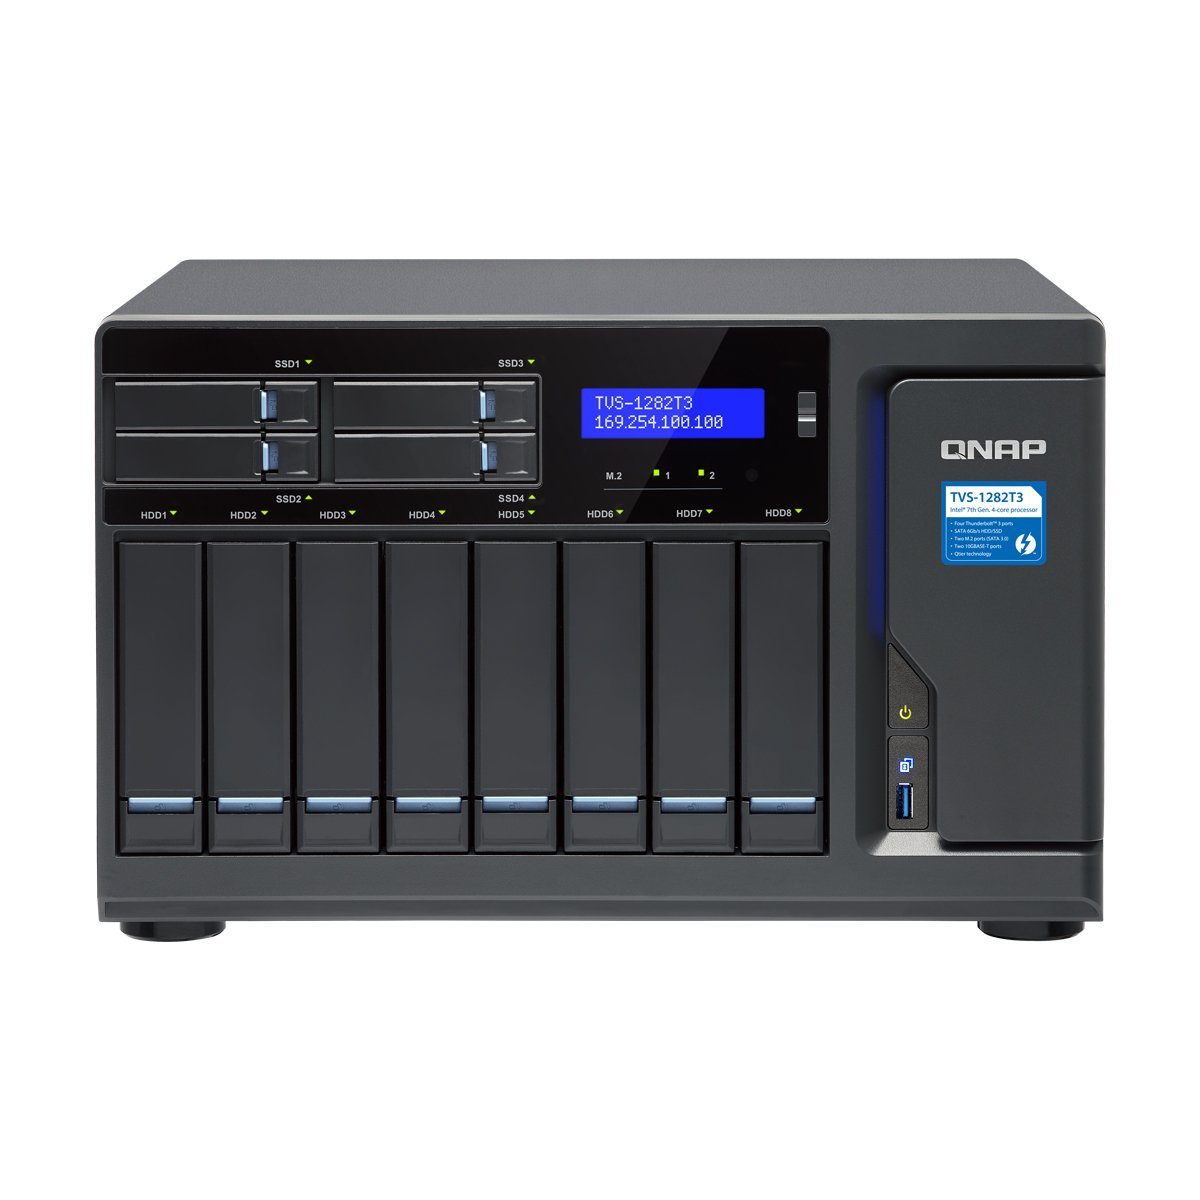 Qnap TVS-1282T3-i7-32G-US Ultra-High Speed 12 bay (8+4) Thunderbolt 3 NAS/iSCSI IP-SAN. Intel 7th Gen Kaby Lake Core i7 3.6GHz Quad Core, 32GB RAM, Thunderbolt3 port x 4 and 10Gbase-T x 2